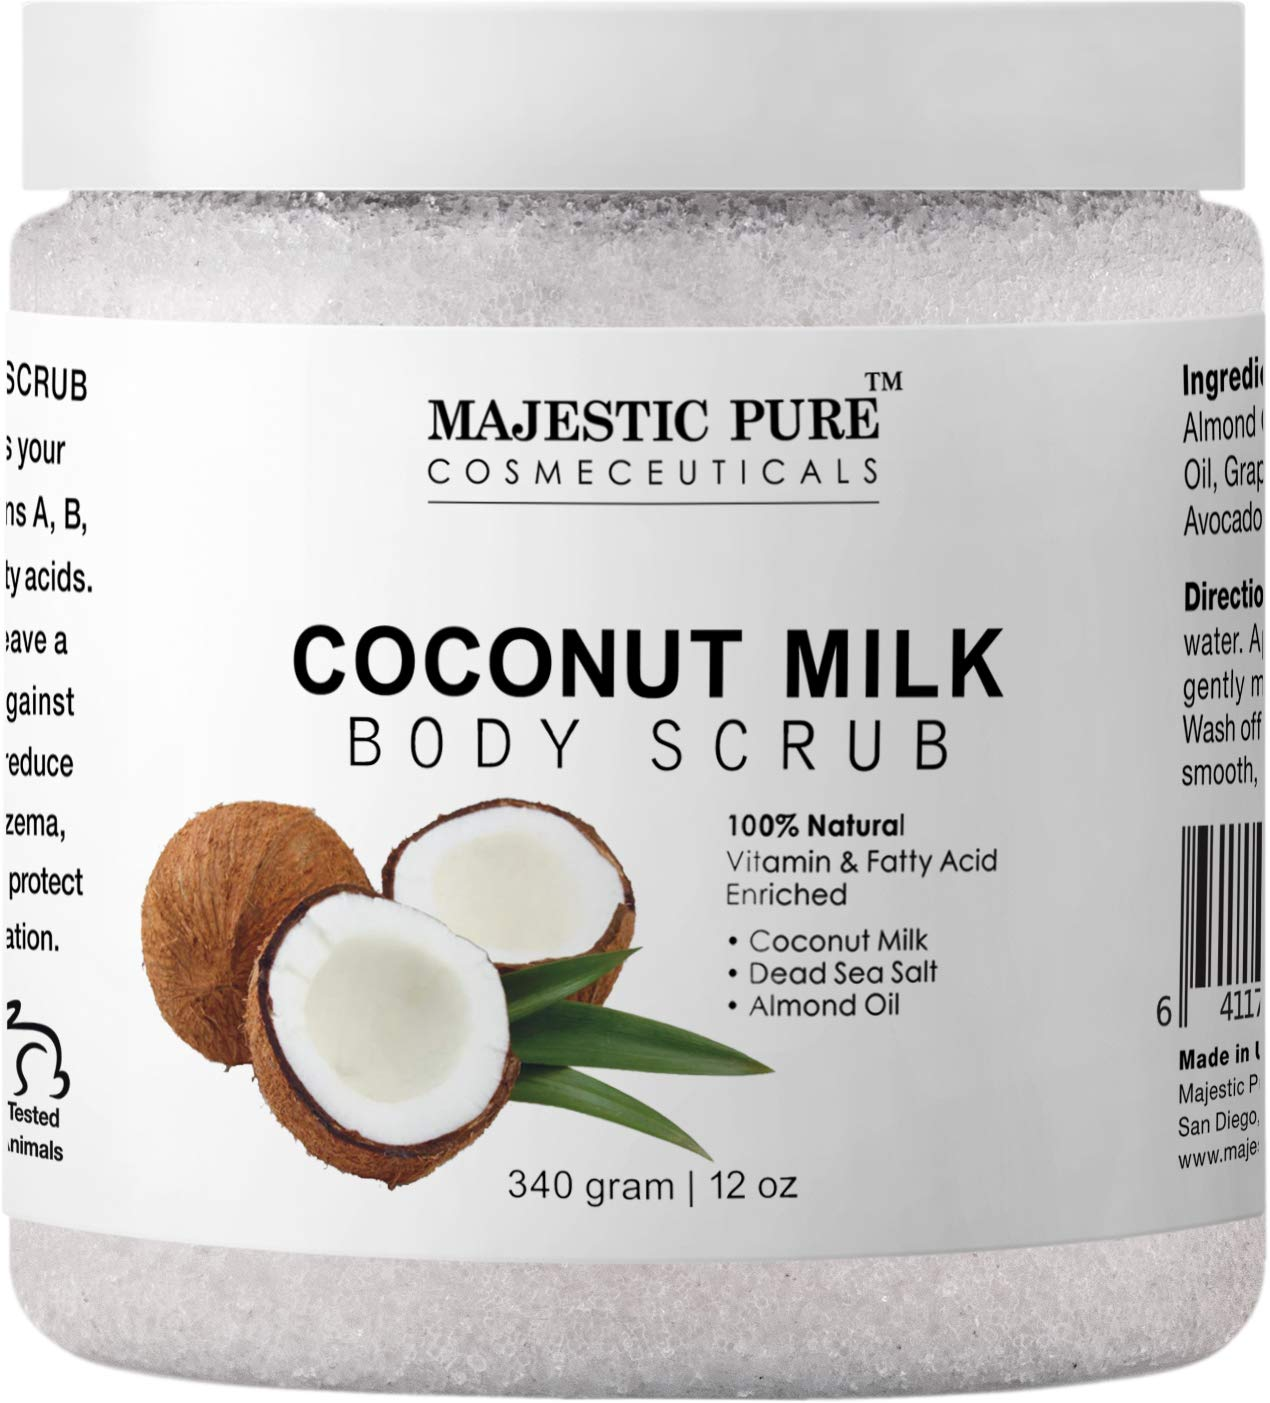 Majestic Pure Coconut Milk Body Scrub, Anti Cellulite & Exfoliator, Natural Skin Care Formula Helps with Stretch Marks, Eczema, Acne and Varicose Veins, 12 Oz by Majestic Pure